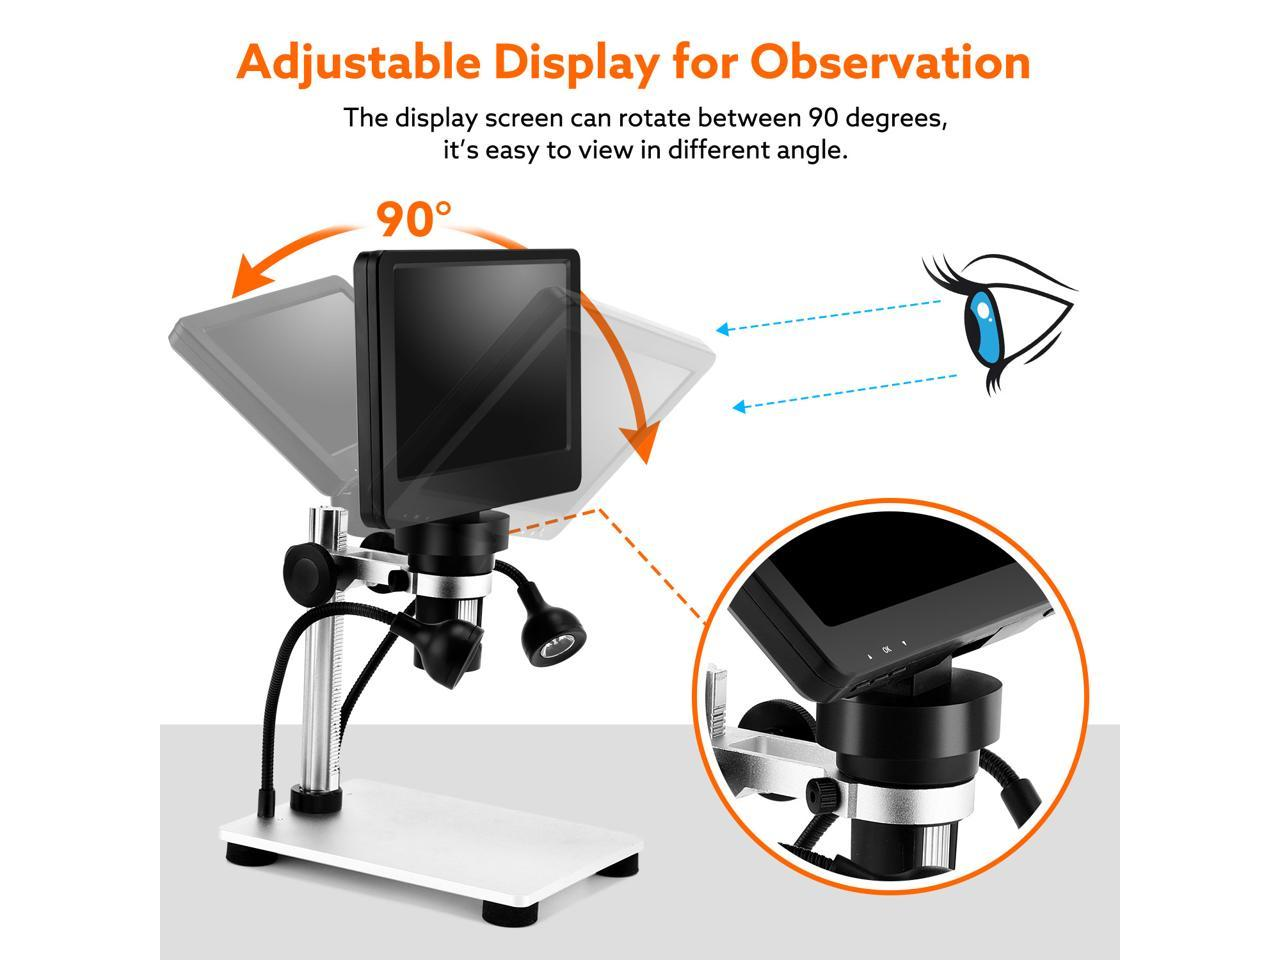 TOMLOV 7 LCD Digital Microscope 1-1200X Magnification with 32GB SD Card Windows//Mac Compatible 12MP Ultra-Precise Focusing Camera 1080P Electric Microscope with Metal Stand